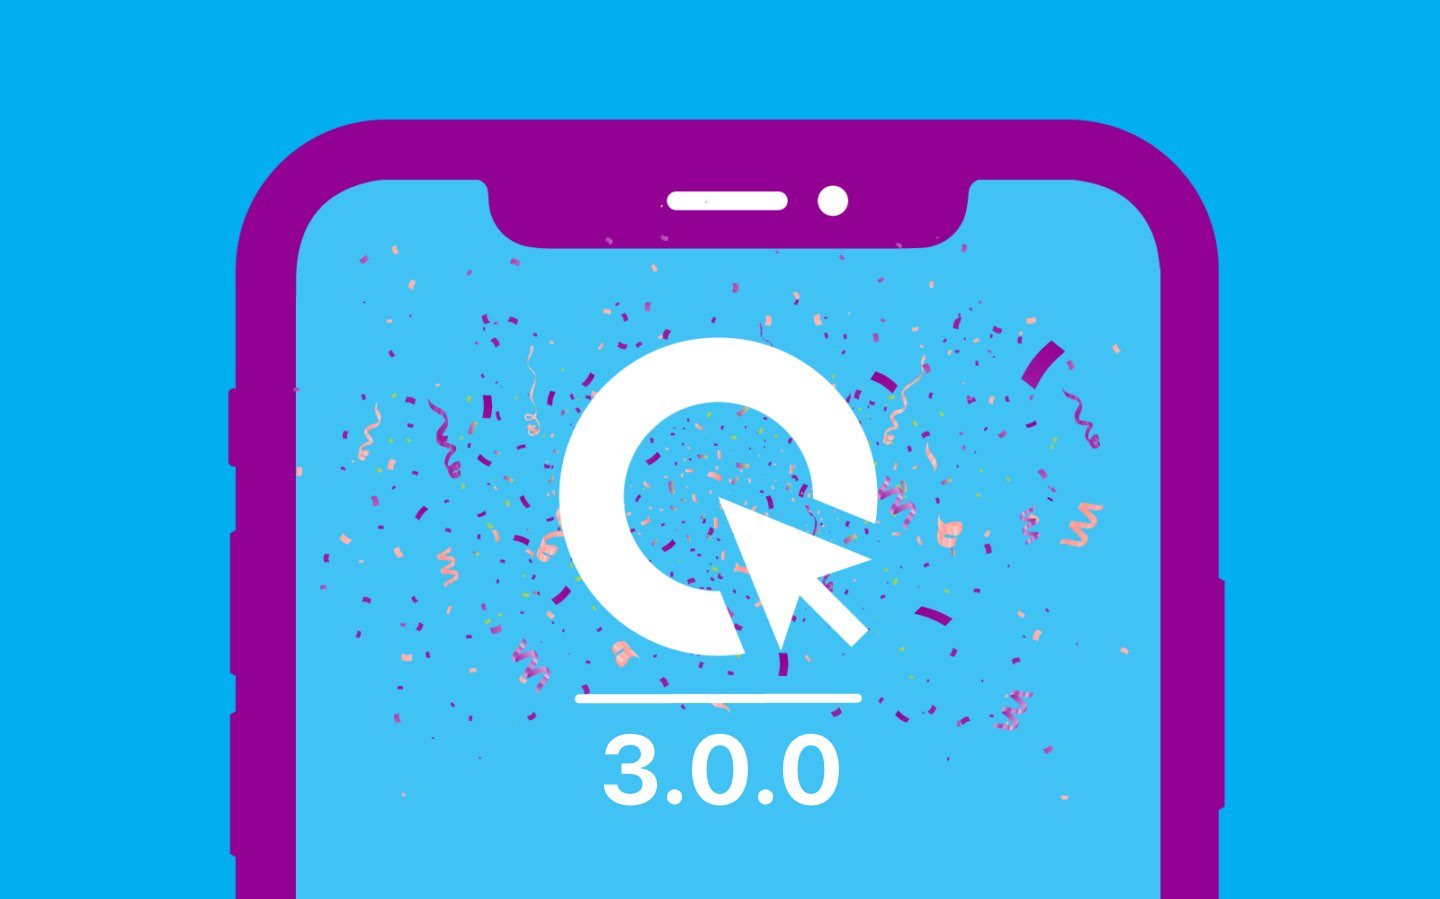 Cliqz for iOS 3.0.0